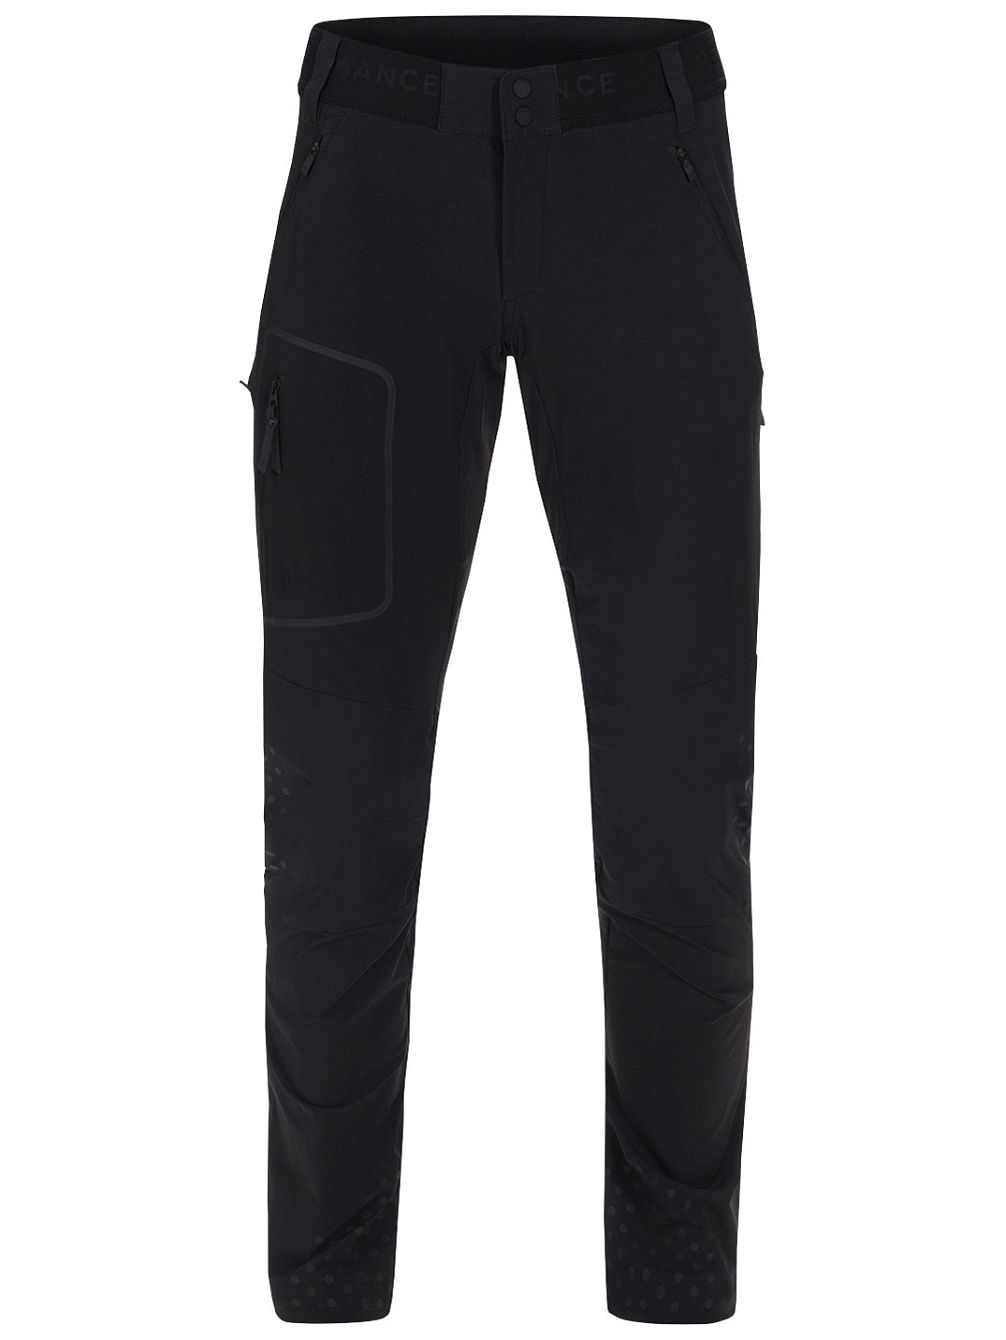 Light Softshell Outdoor Pants